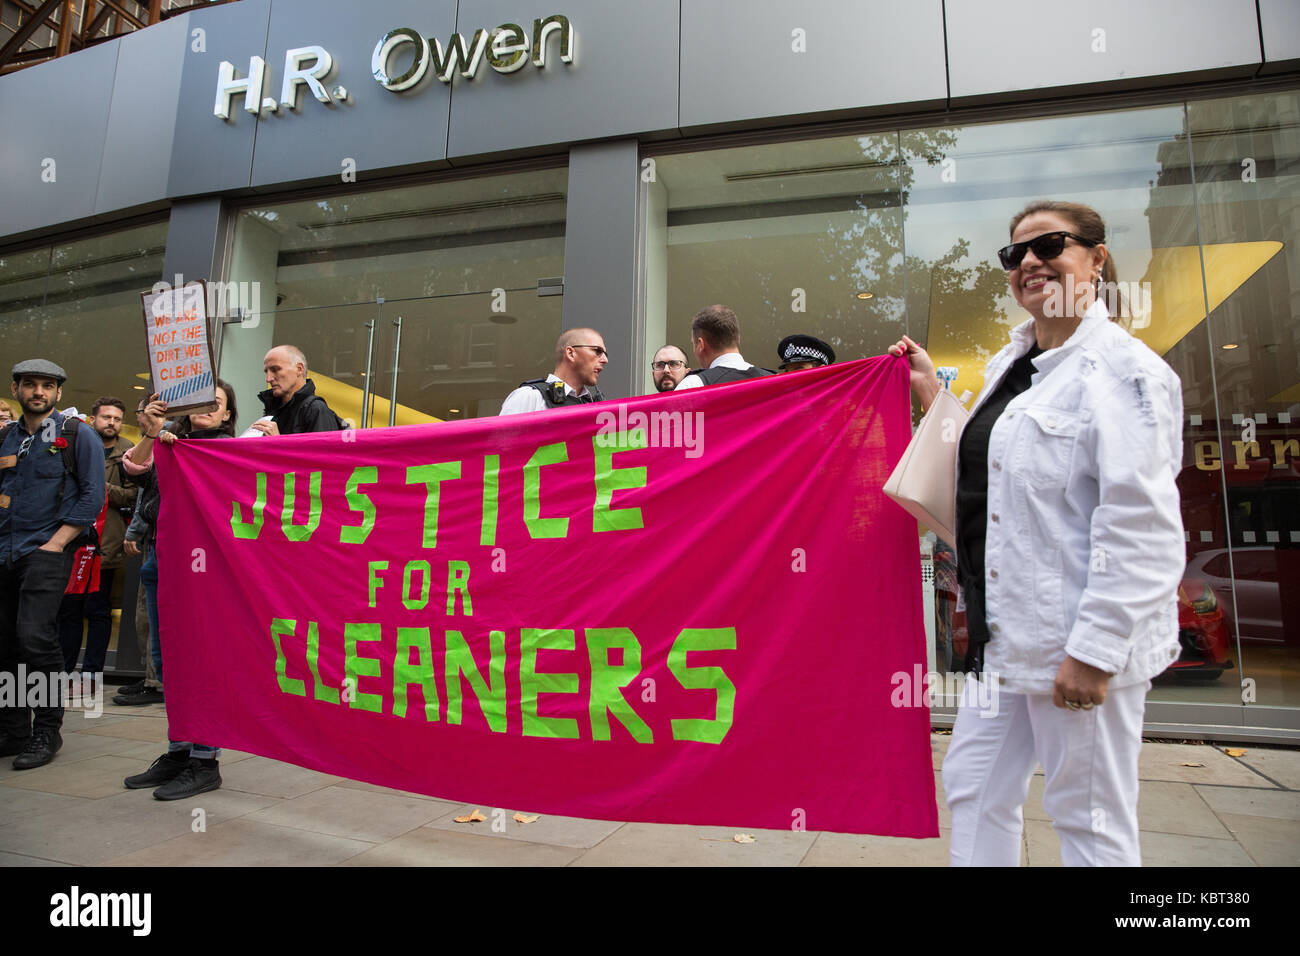 London, UK. 30th September, 2017. Supporters of migrant cleaners Angelica Valencia Bolanos and Fredy Lopez suspended - Stock Image